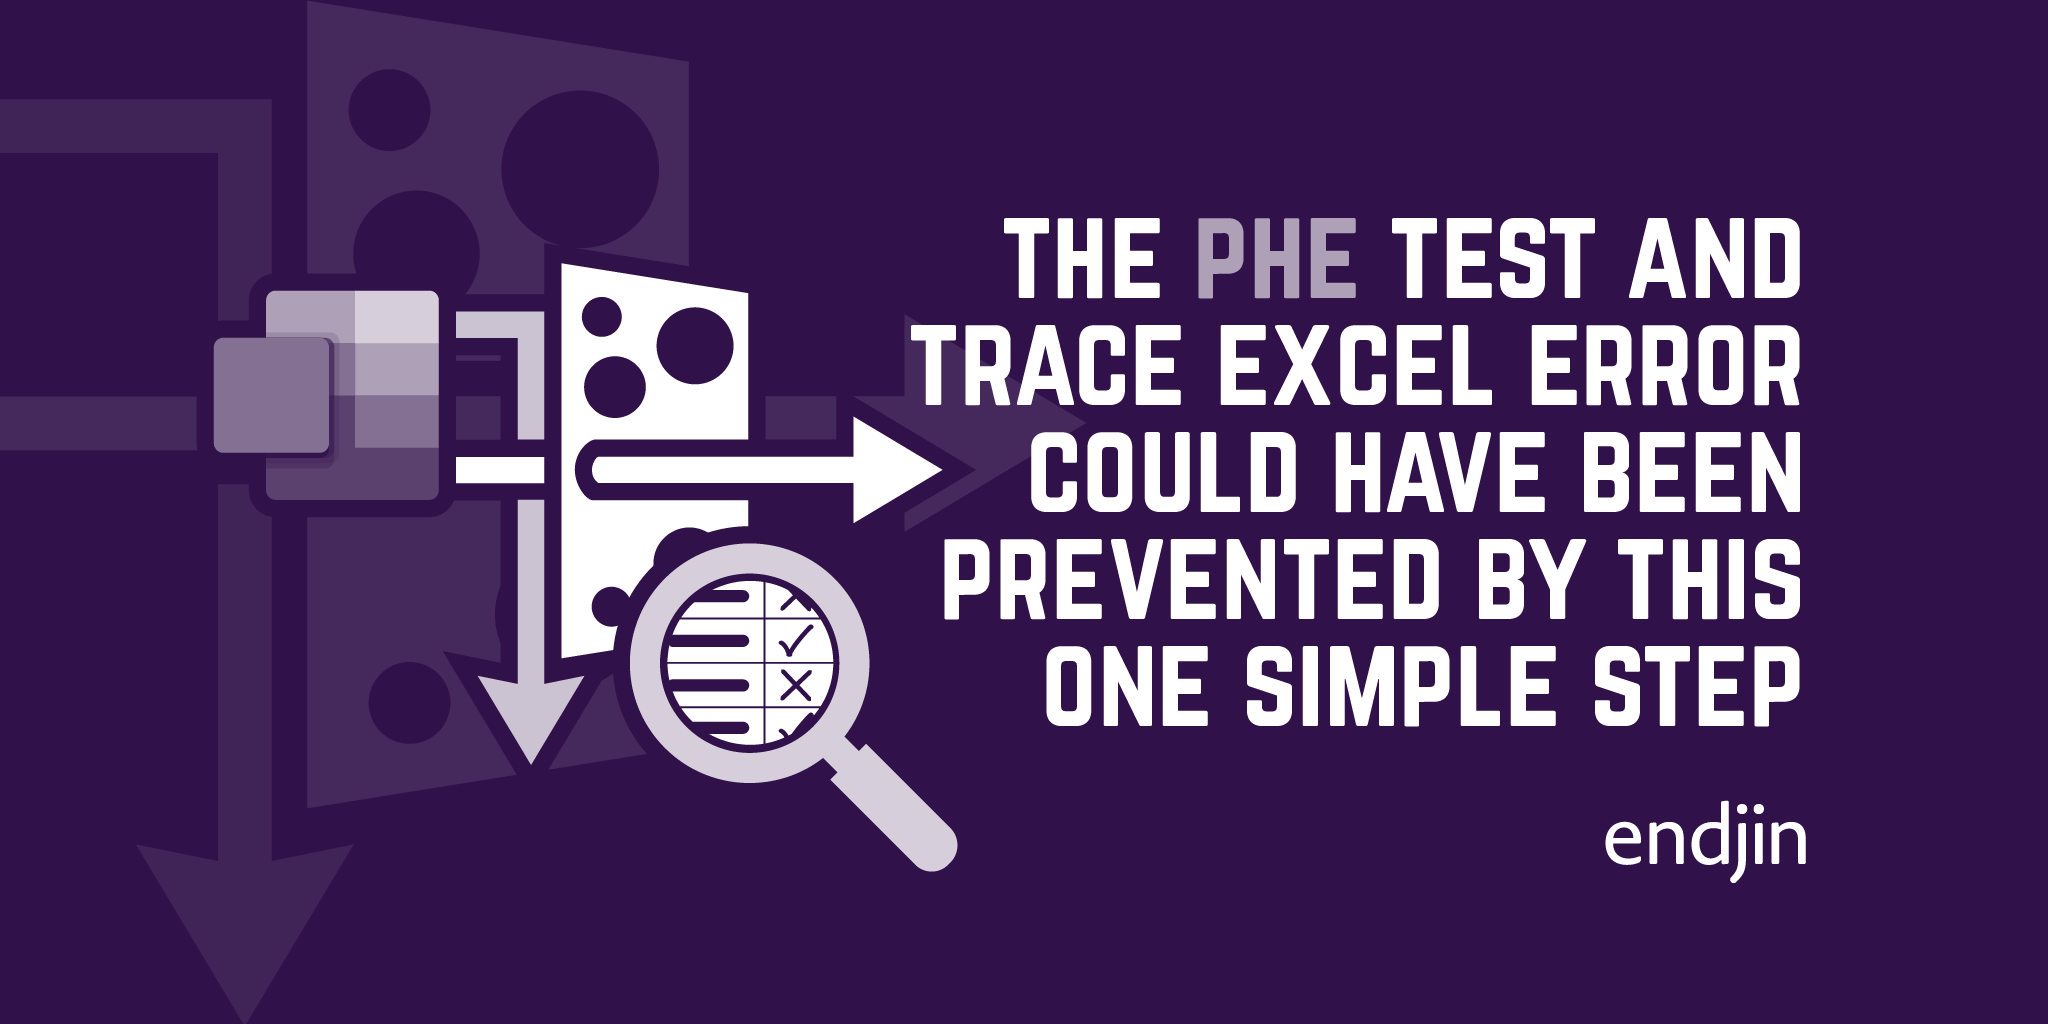 The Public Health England Test and Trace Excel error could have been prevented by this one simple step